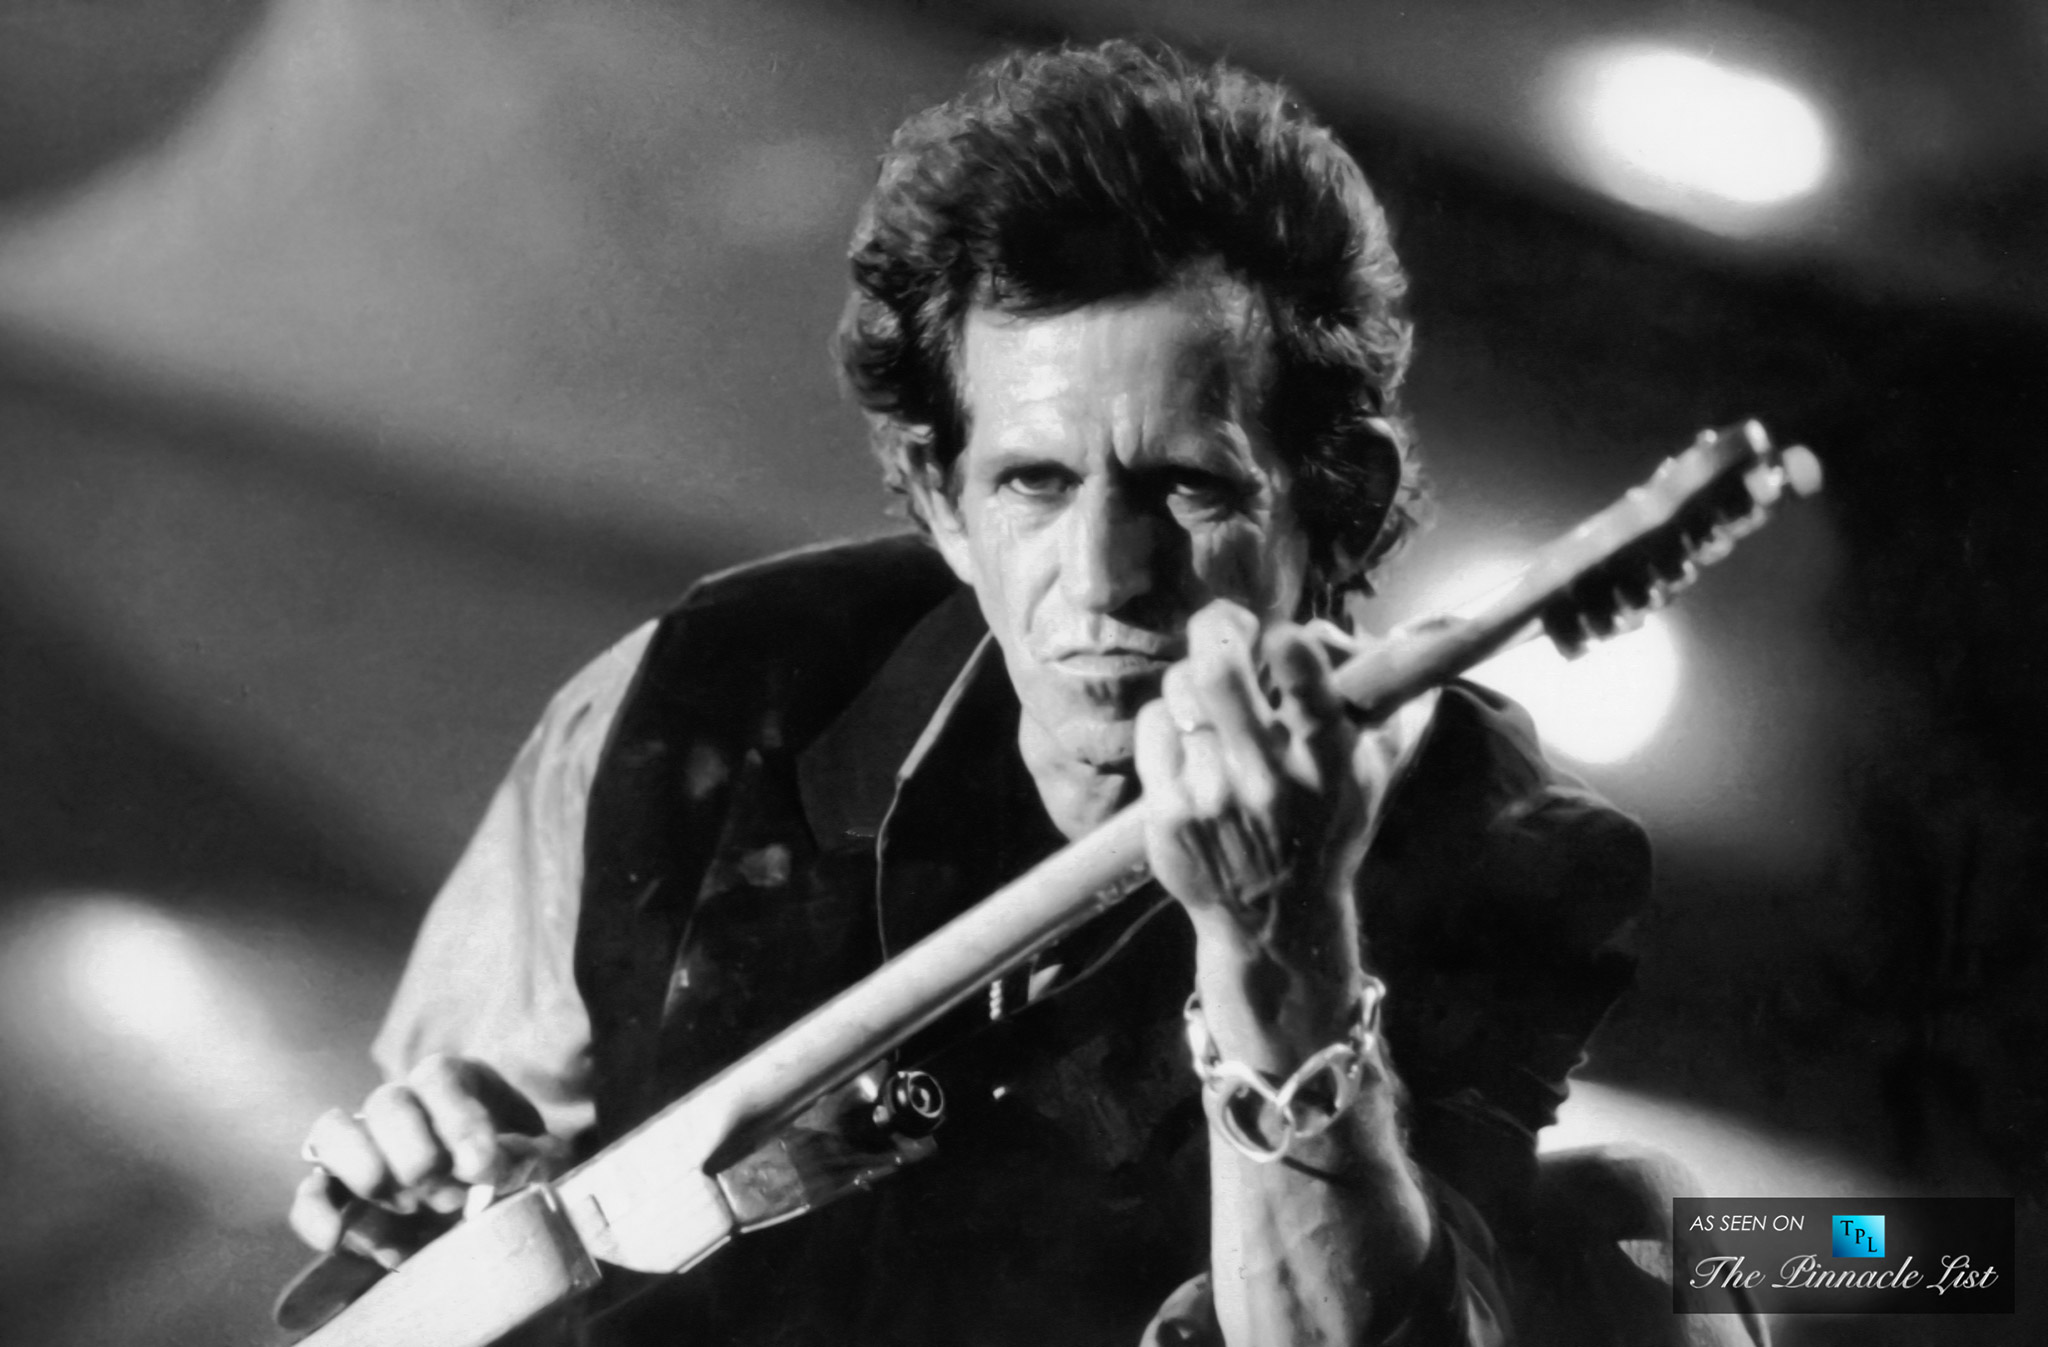 Keith Richards - Protecting High Value Assets - Five Unusual and Noteworthy Celebrity Insurance Policies